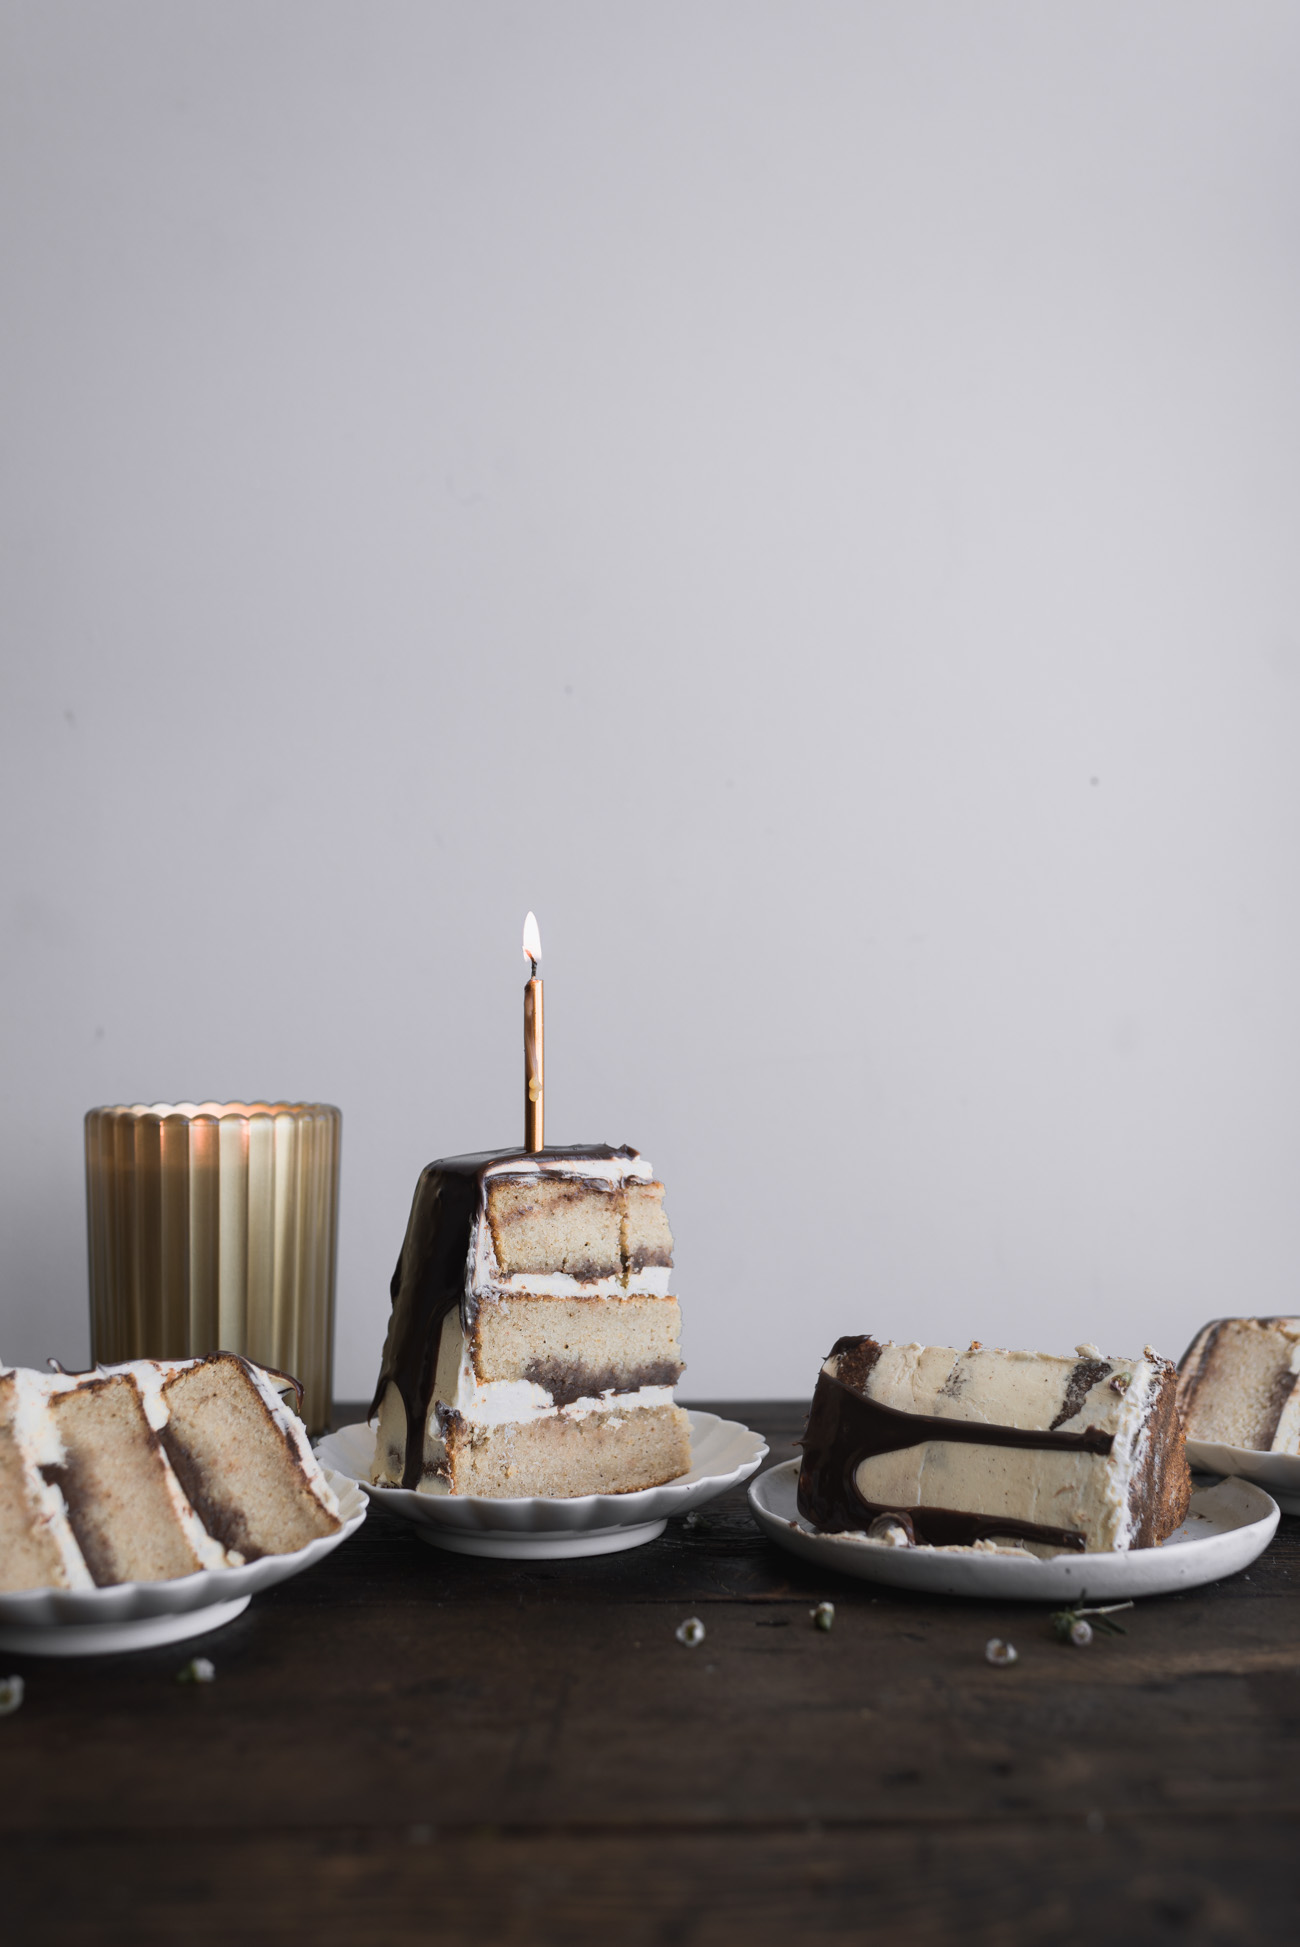 Gingerbread-Whisky-Cake-with-Brown-Sugar-Swiss-Meringue-Buttercream-and-Milk-Chocolate-Ganache-4.jpg